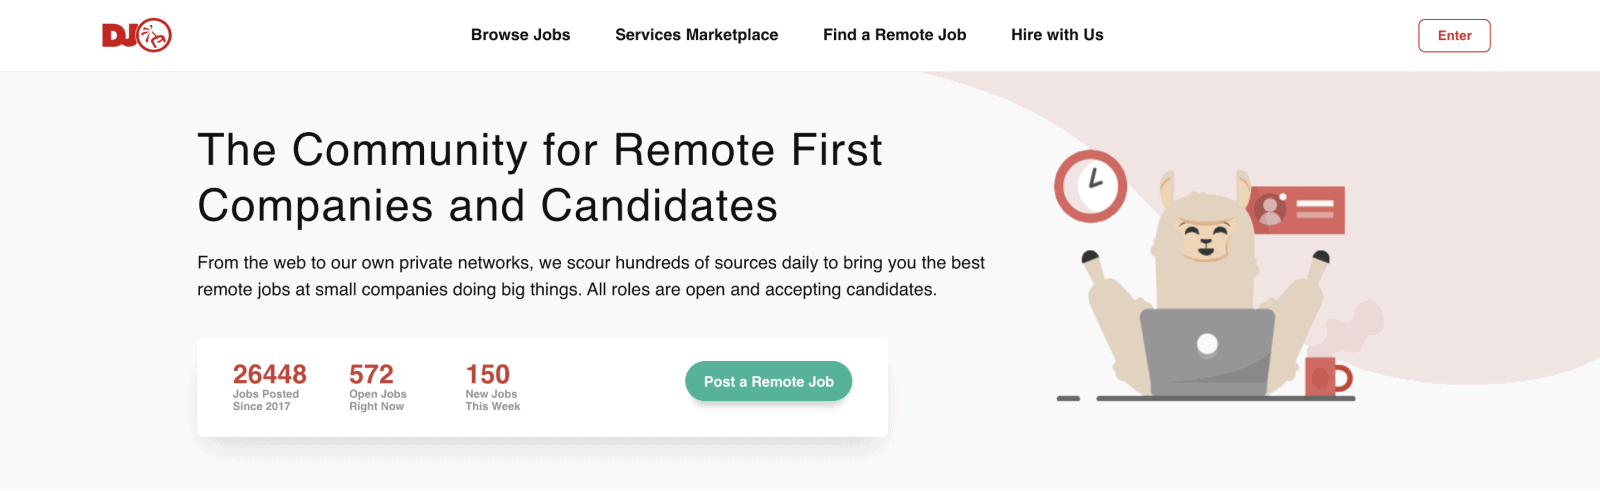 Dynamite Jobs is one of the leading job boards for remote positions.